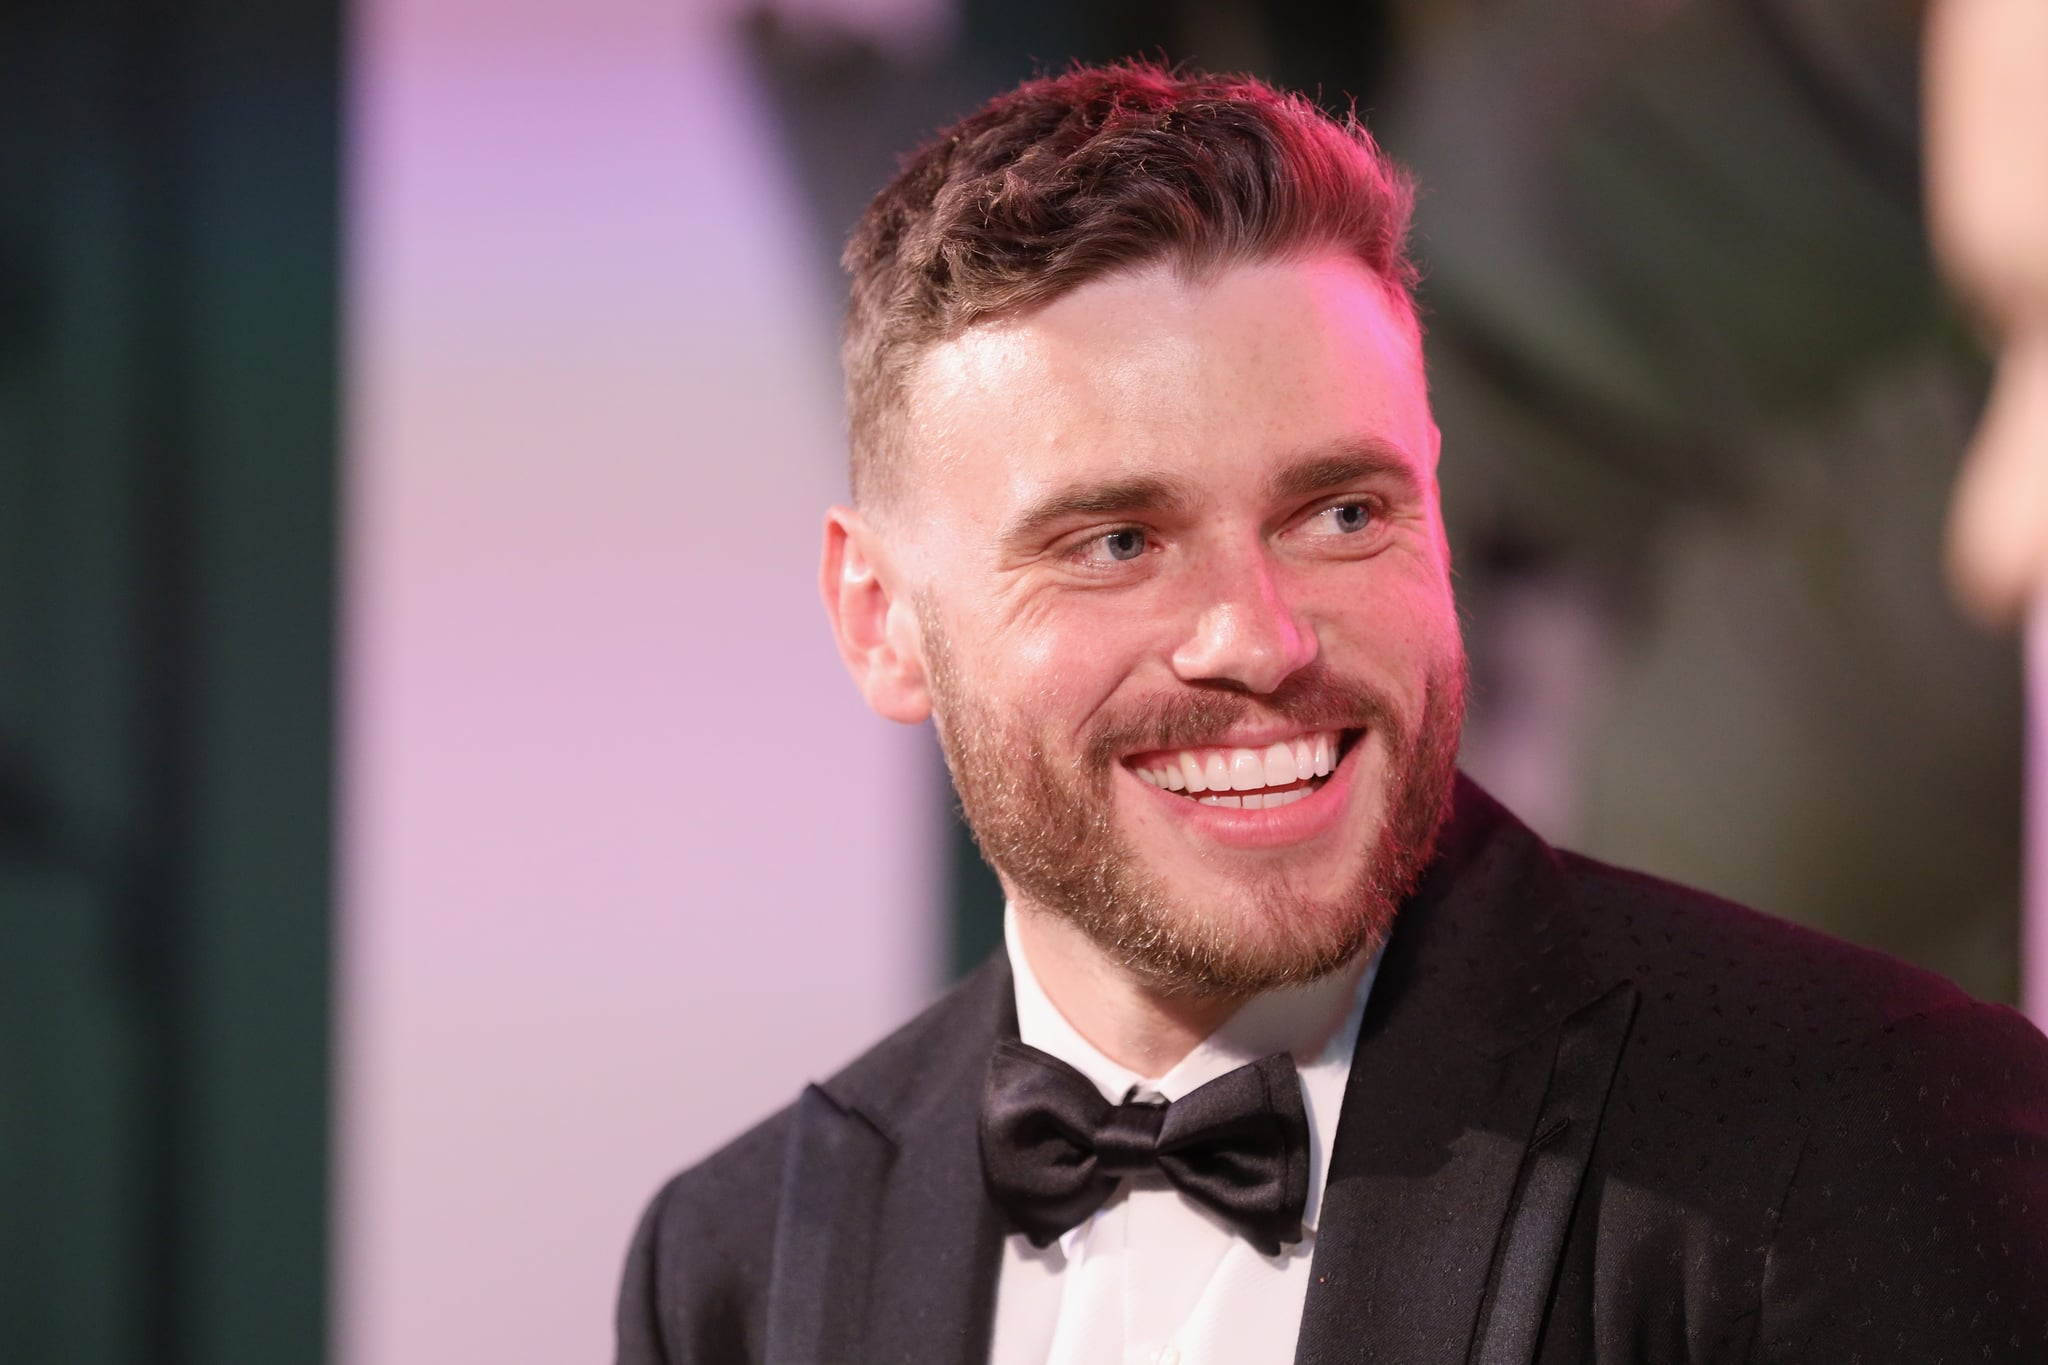 LOS ANGELES, CA - FEBRUARY 24:  Gus Kenworthy attends IMDb LIVE At The Elton John AIDS Foundation Academy Awards® Viewing Party on February 24, 2019 in Los Angeles, California.  (Photo by Rich Polk/Getty Images for IMDb)